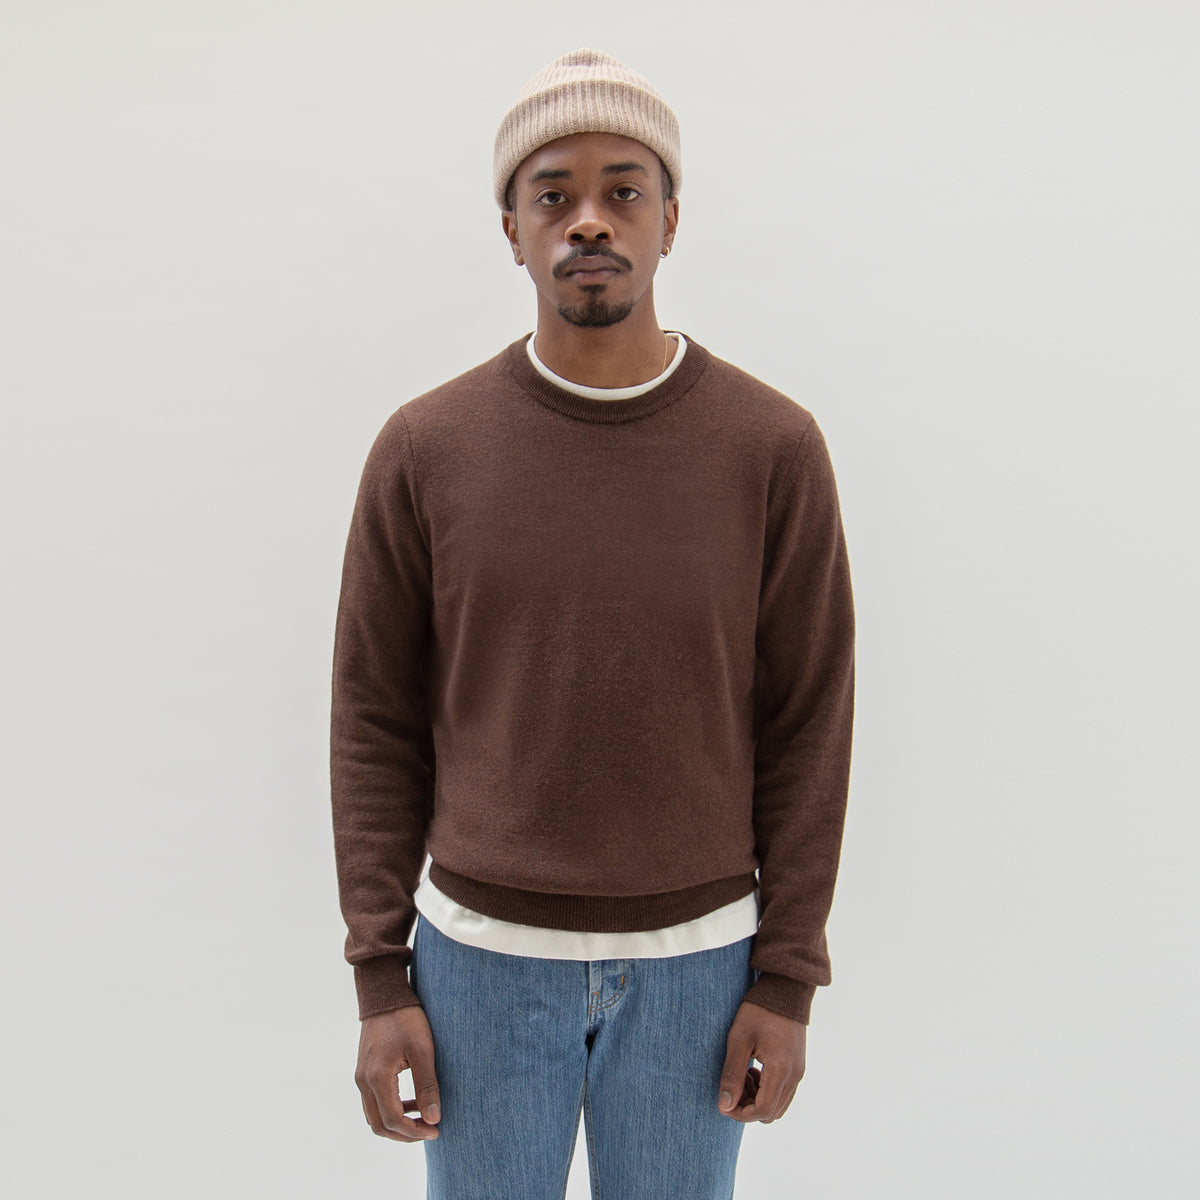 Lambswool Sweater Brown - Unrecorded